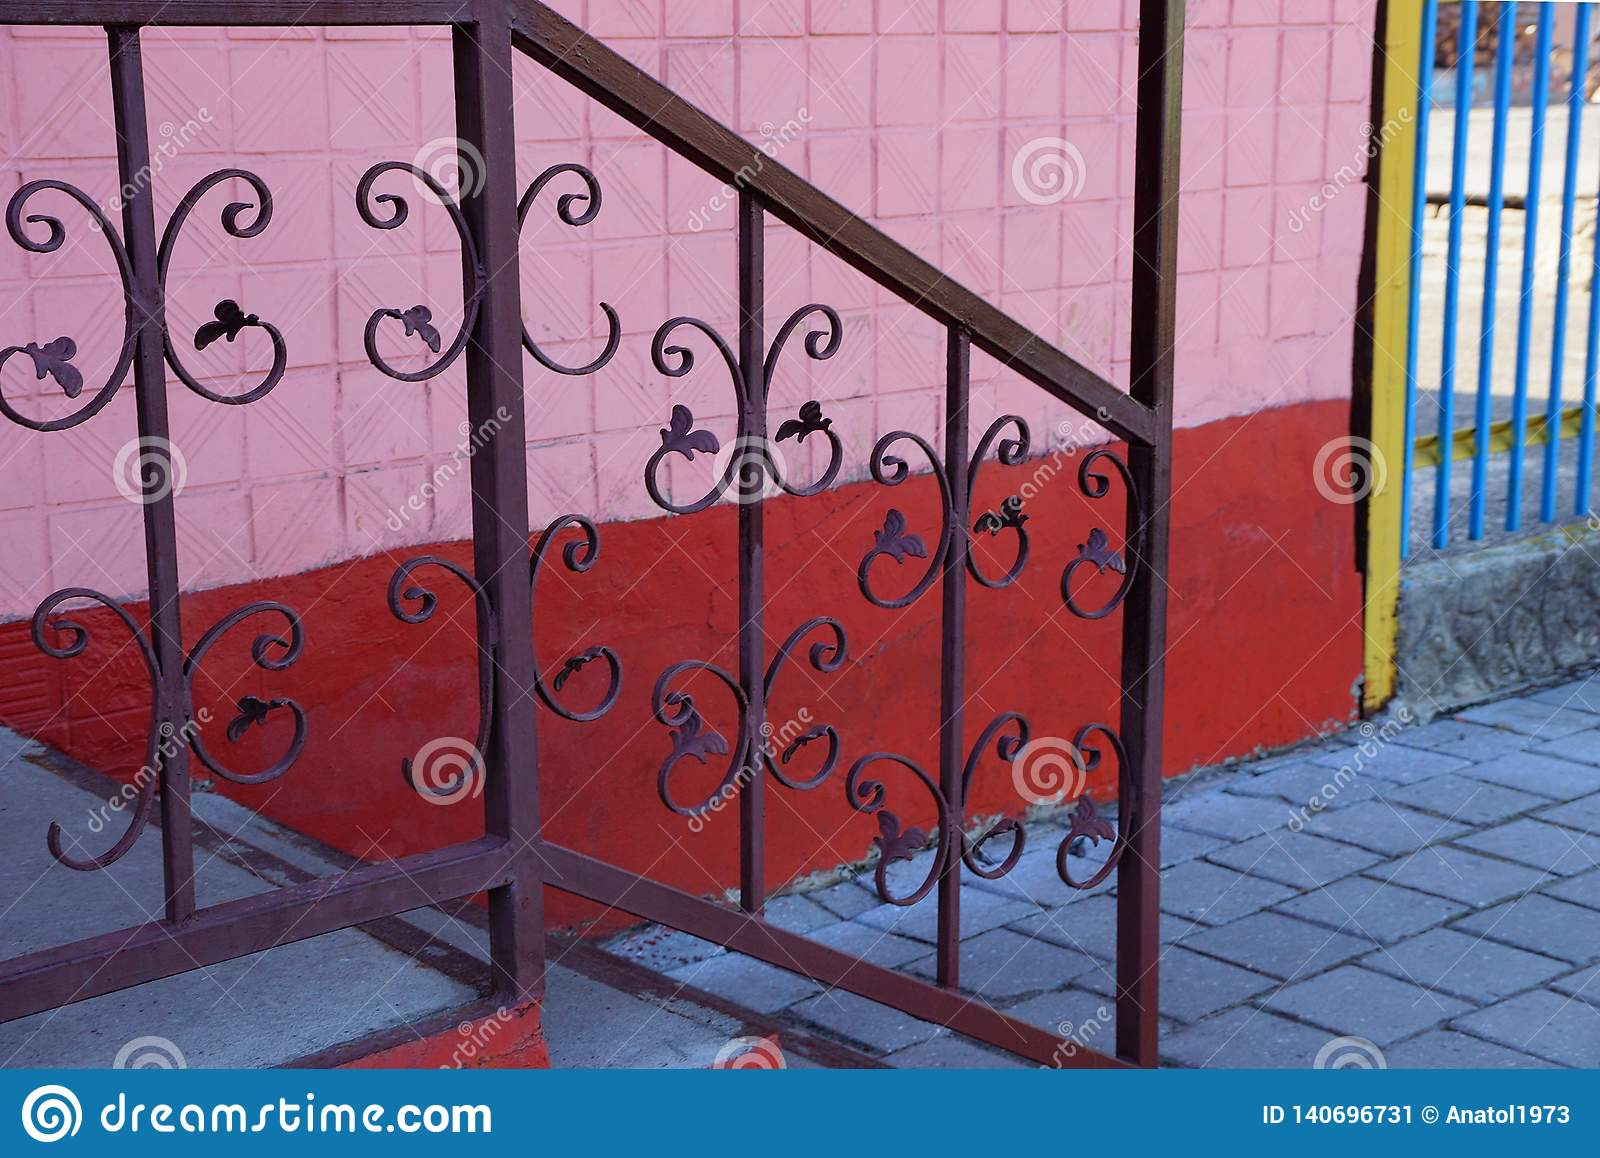 Part of the brown handrails with a forged pattern on the steps on the street near the wall